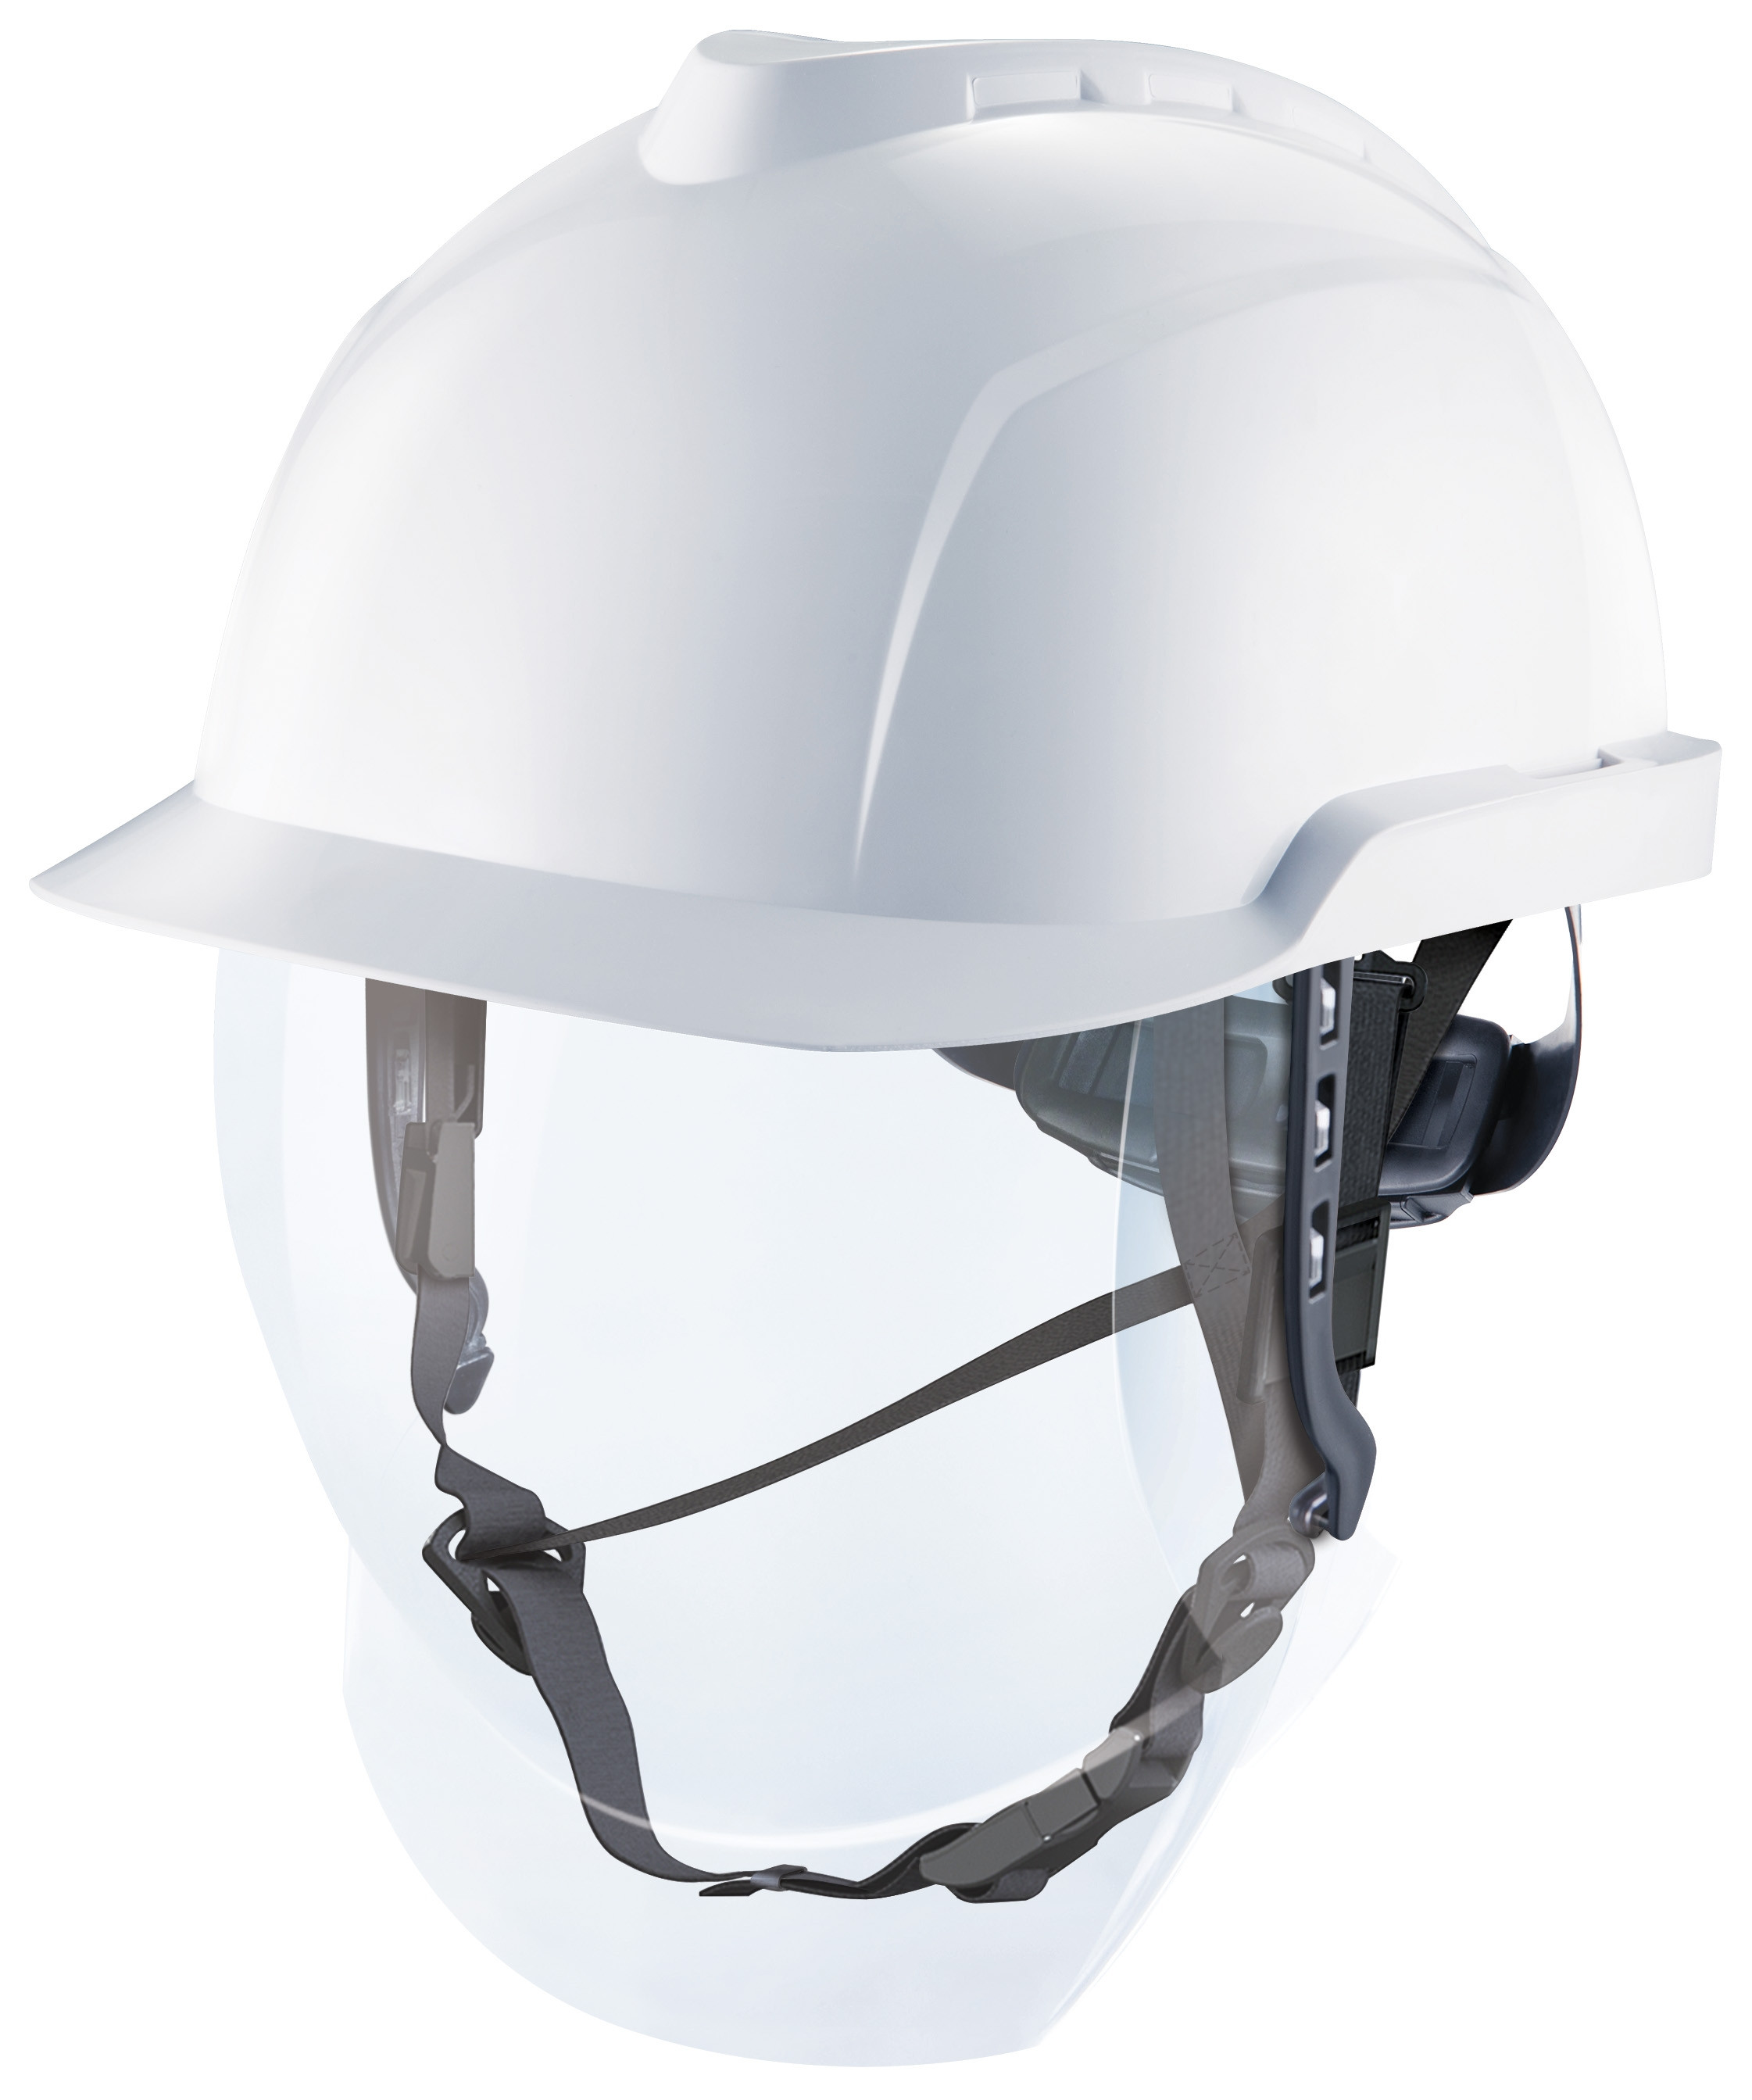 MSA V-GARD 950 with integrated class 1 visor